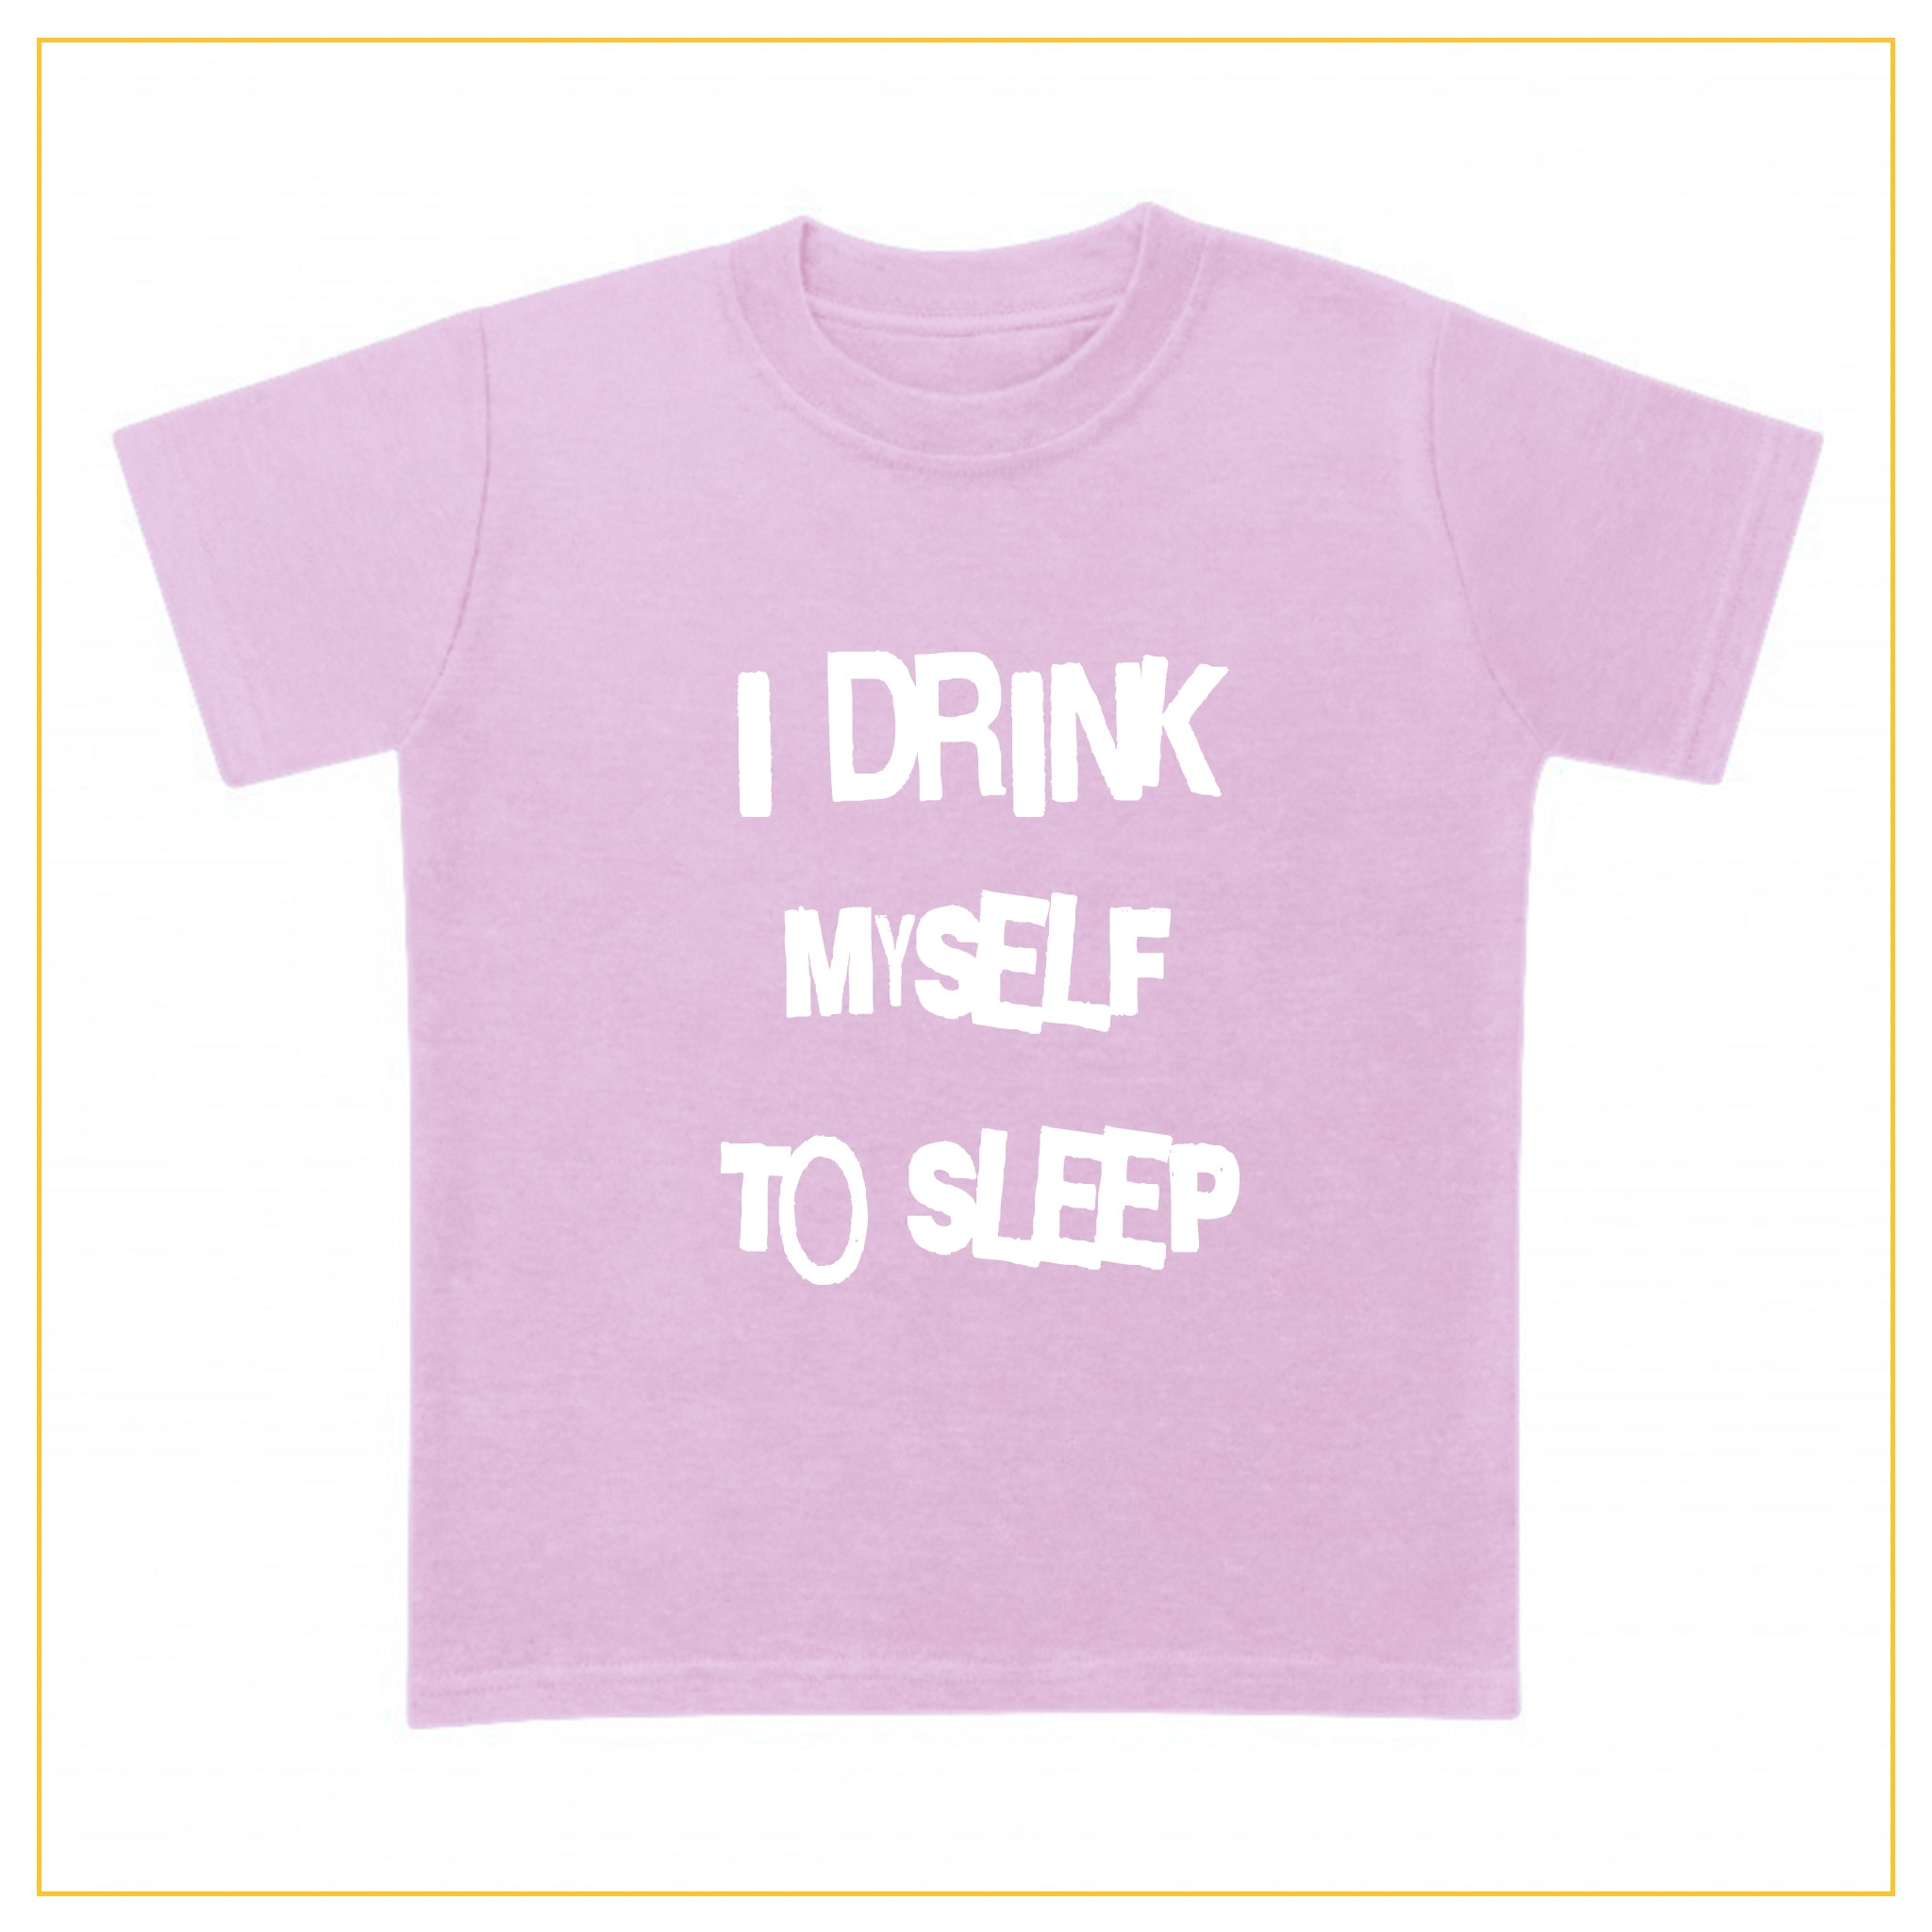 I drink myself to sleep baby t-shirt in dust pink